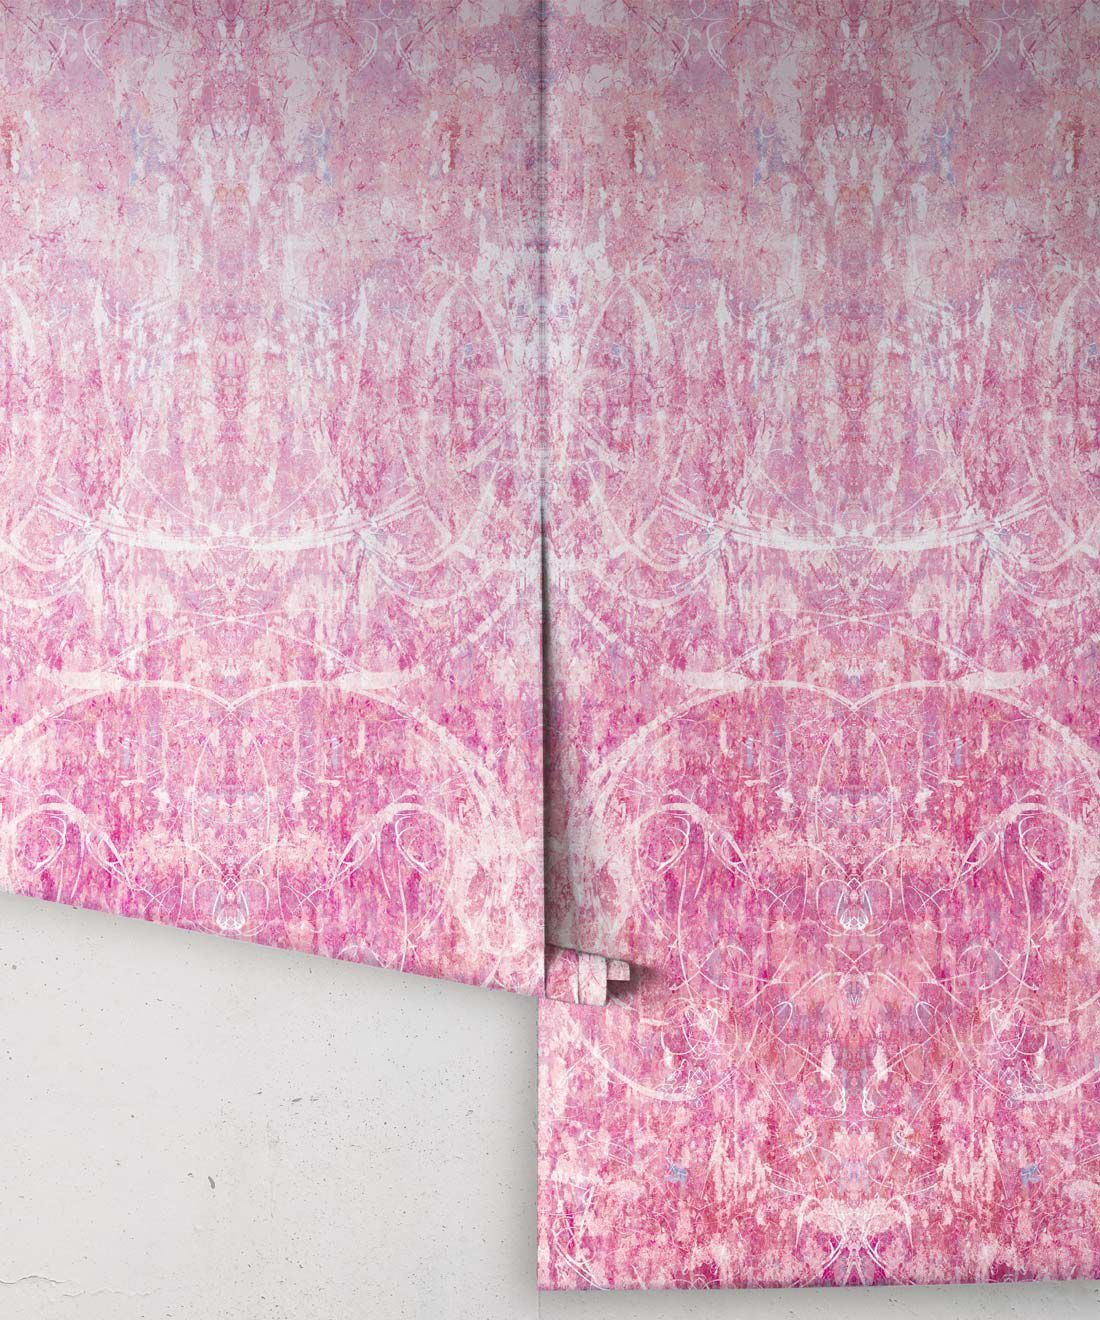 Hori Wallpaper by Simcox • Color Rose • Abstract Wallpaper • rolls